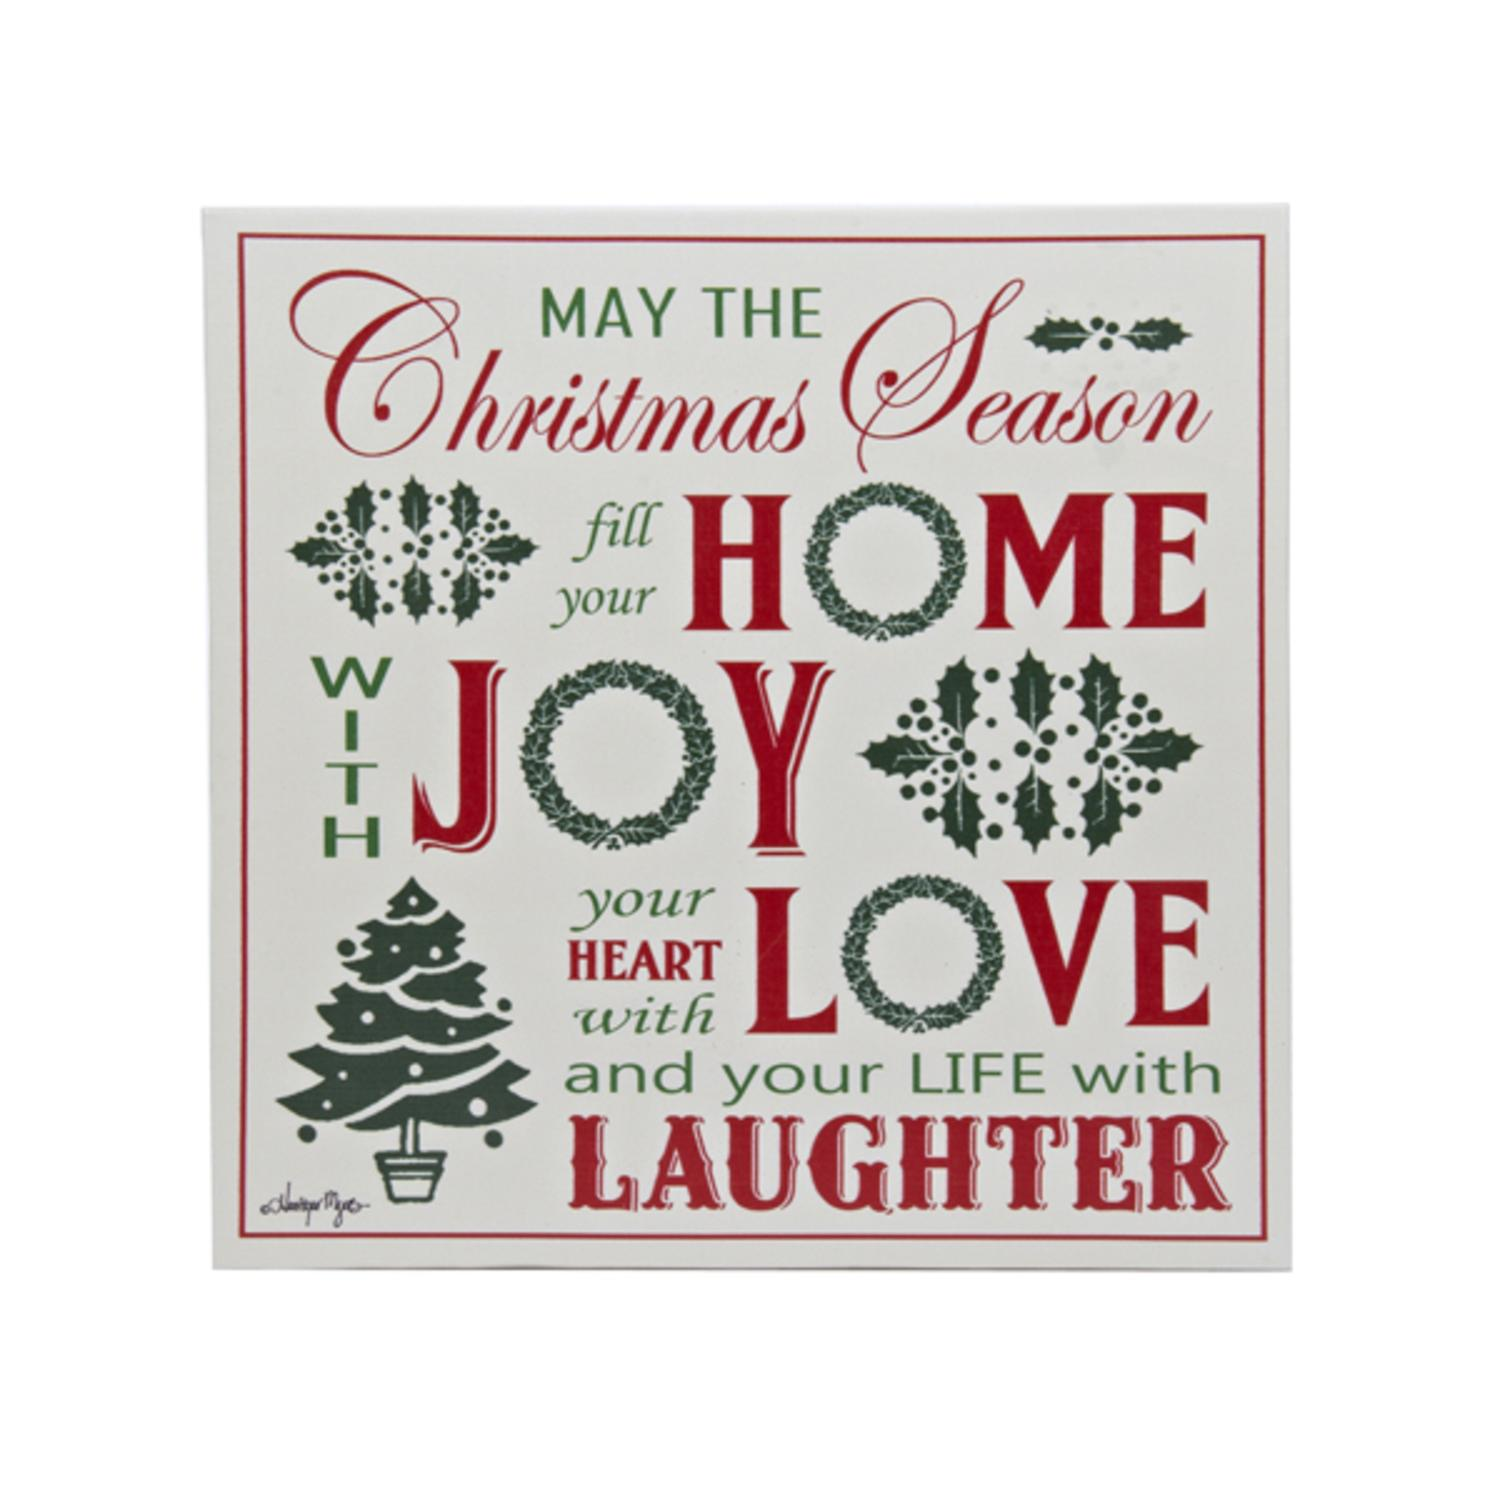 Pack of 4 White, Red and Green Christmas Wall Decor Plaques with Sayings 12""